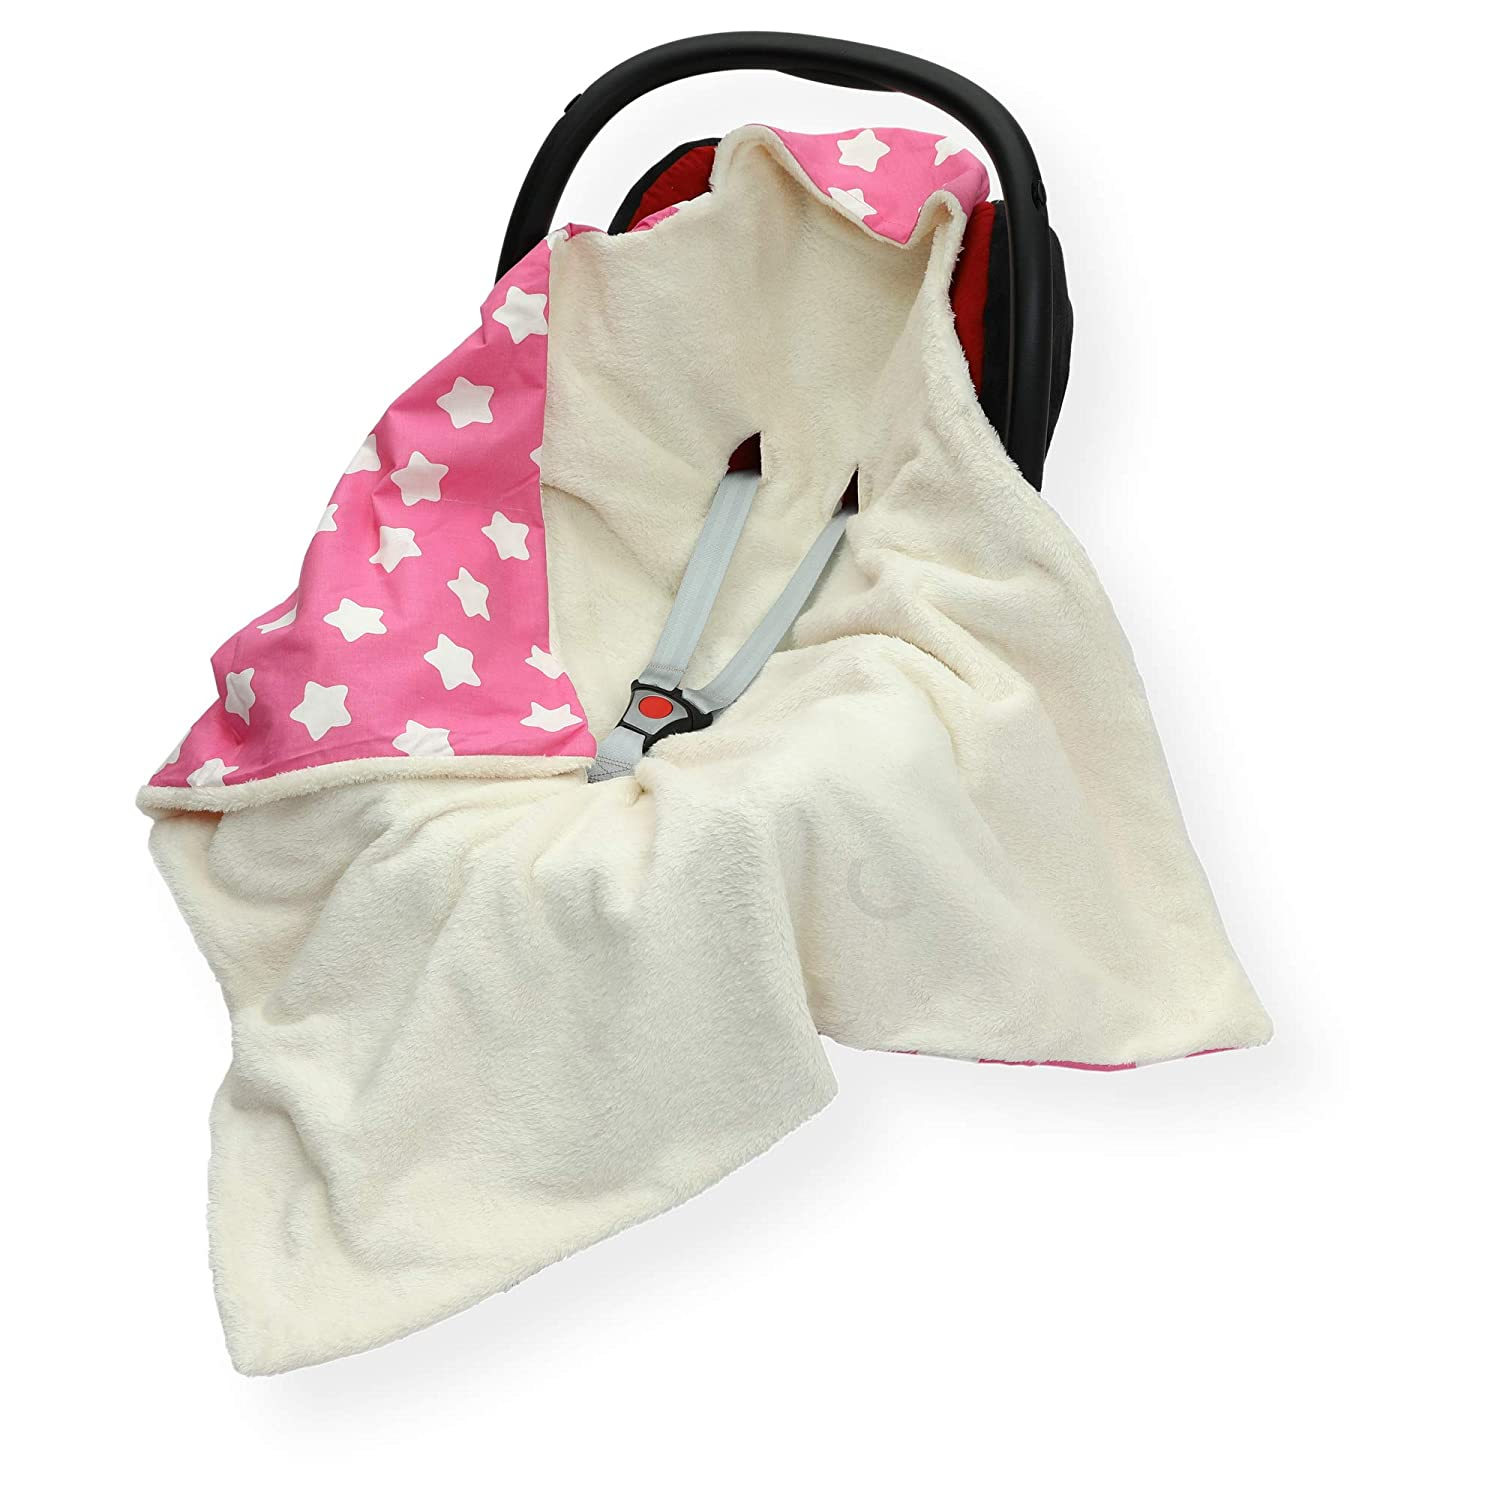 Butterfly at Grey//White Double Sided CAR SEAT Blanket//Cover // COSYTOES FOOTMUFF 100 x 100cm Hooded Blanket with SEAT Belt Holes